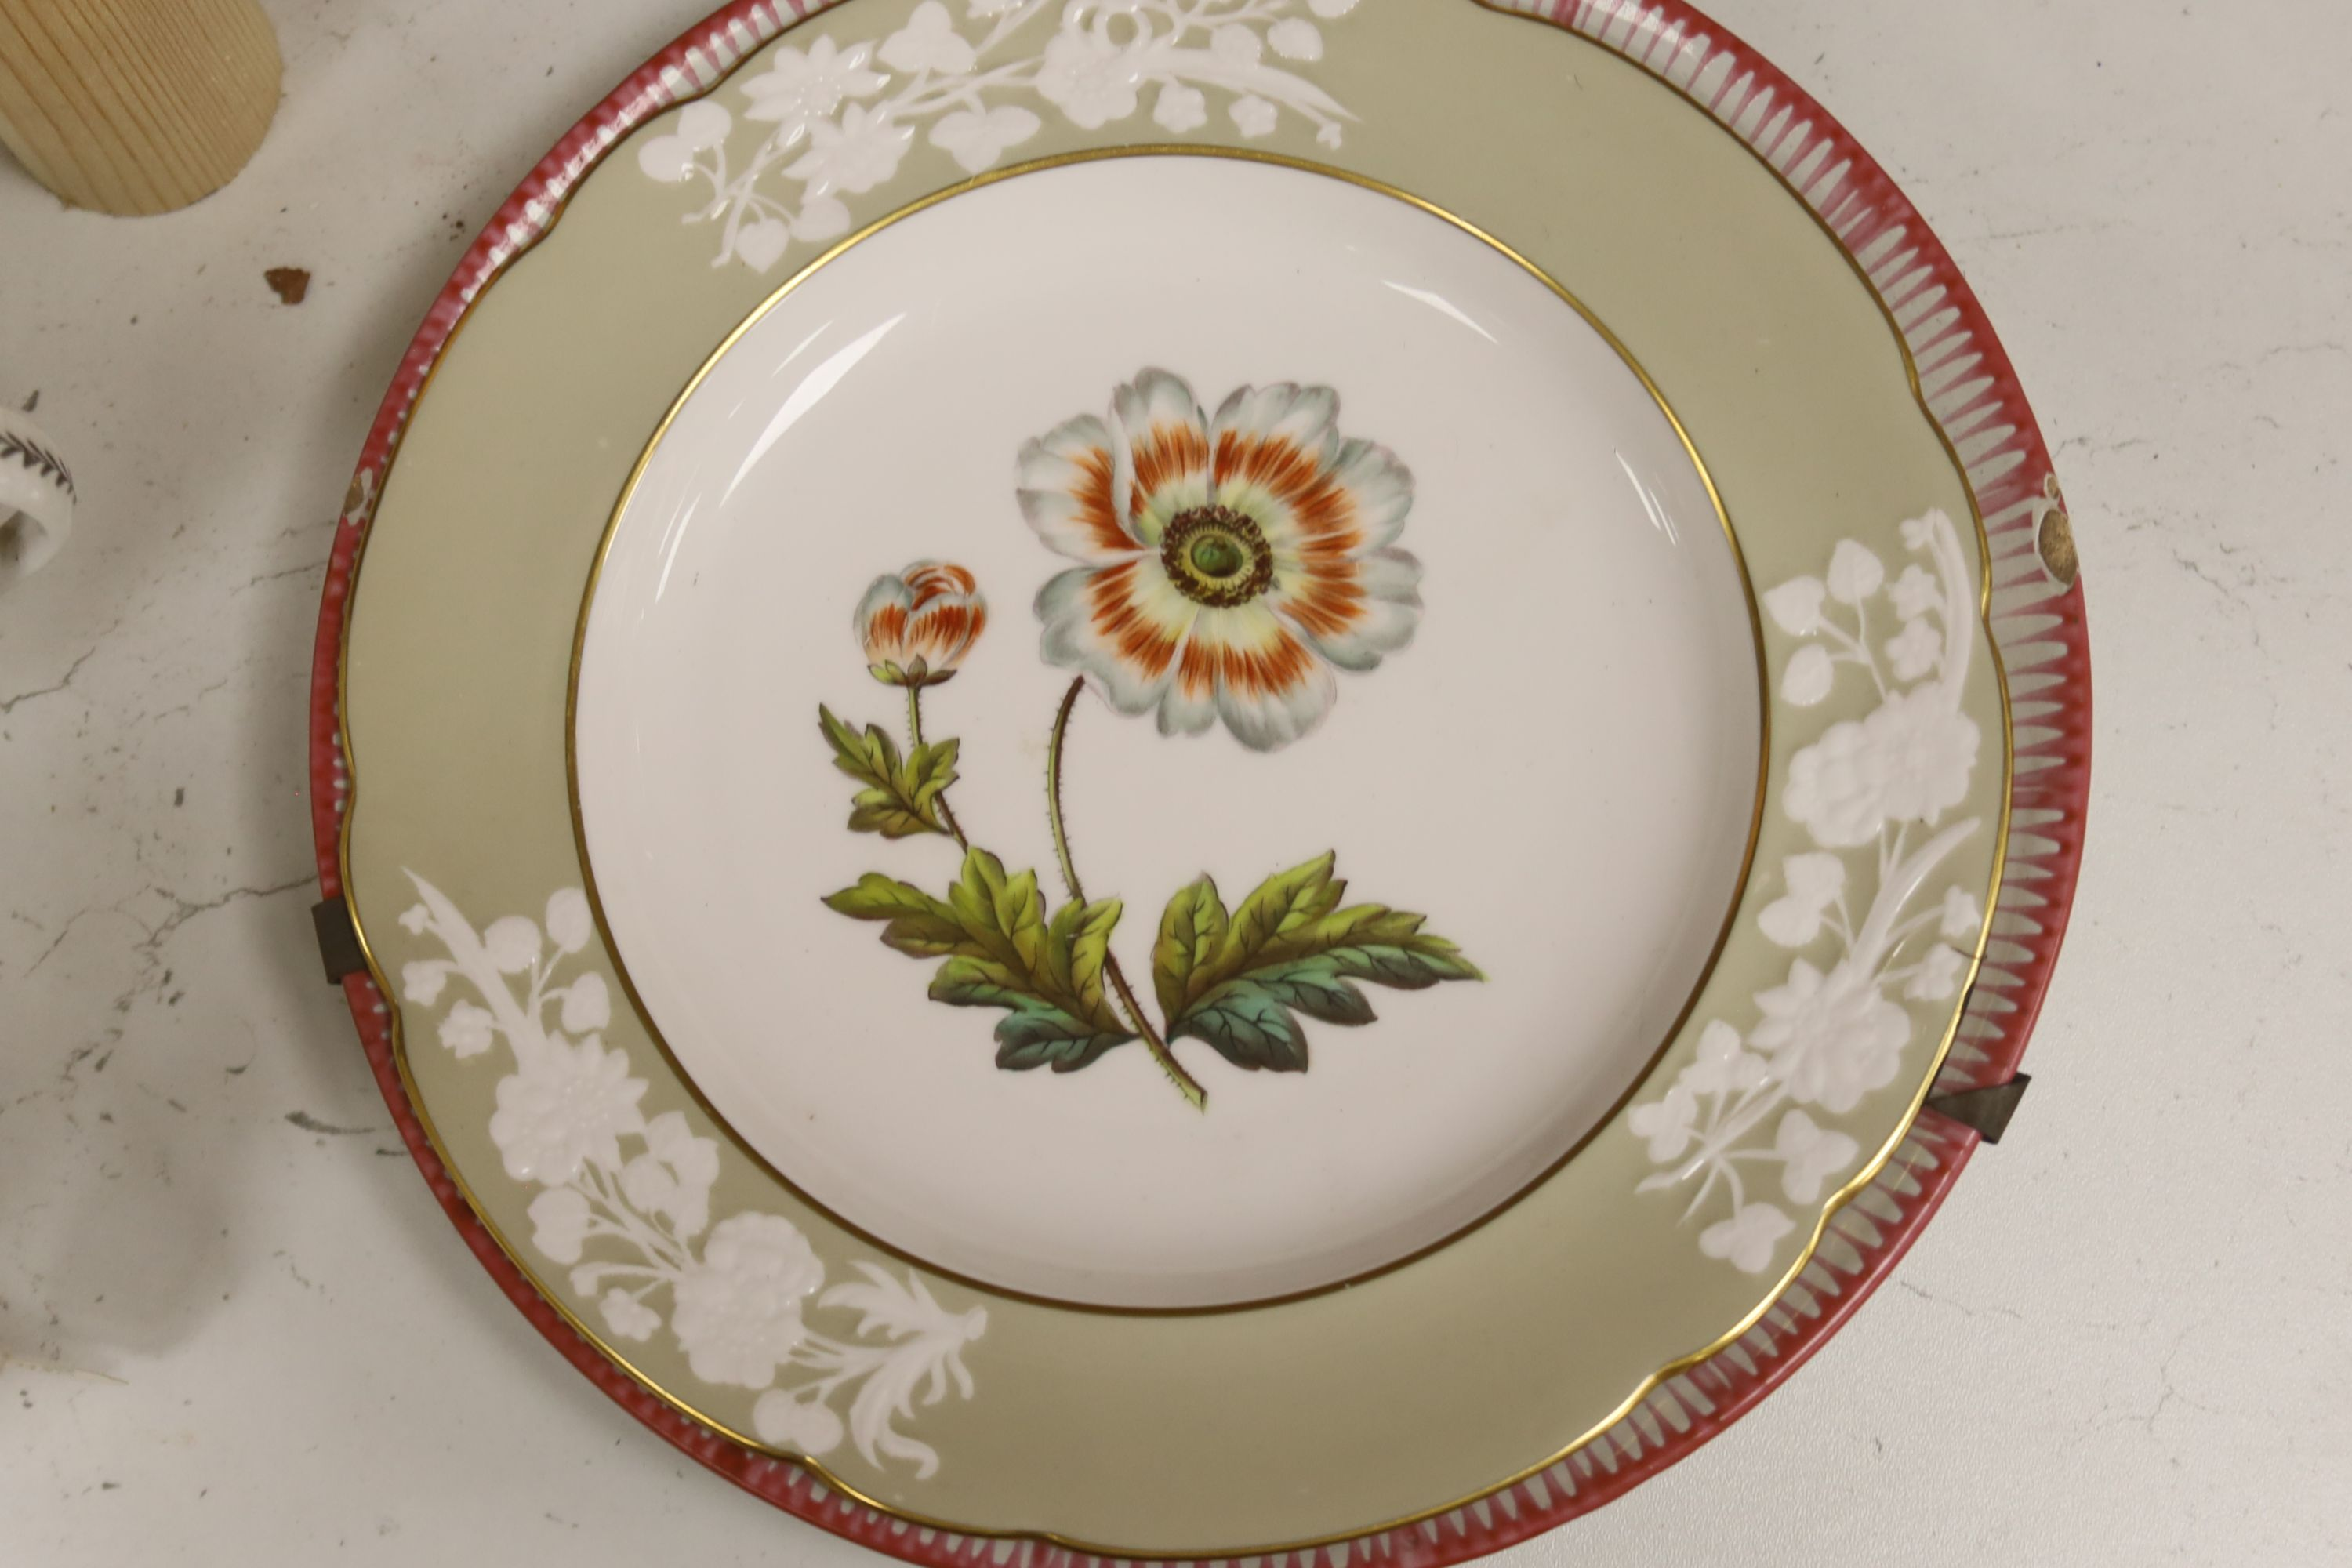 A group of late 18th / early 19th century English porcelain teaware and plates,together with a - Image 2 of 6